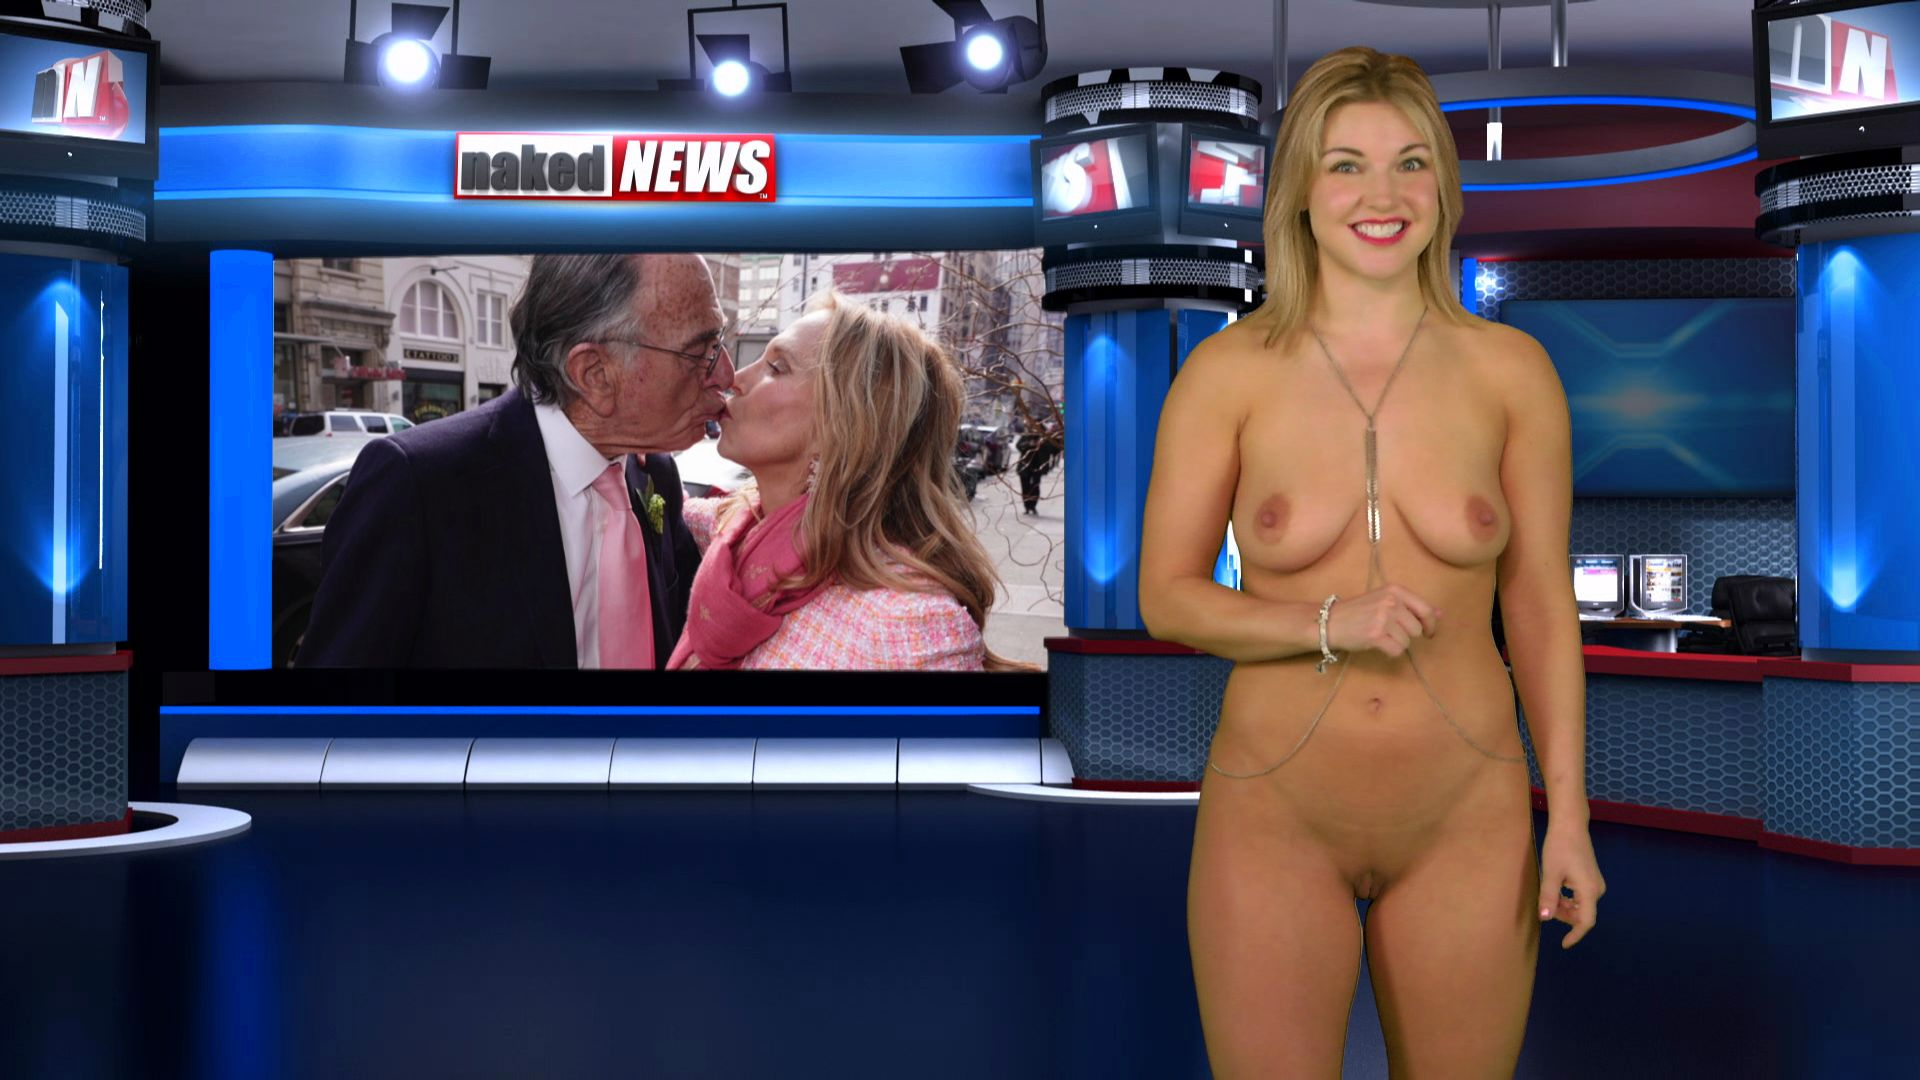 Watch naked news uncovered